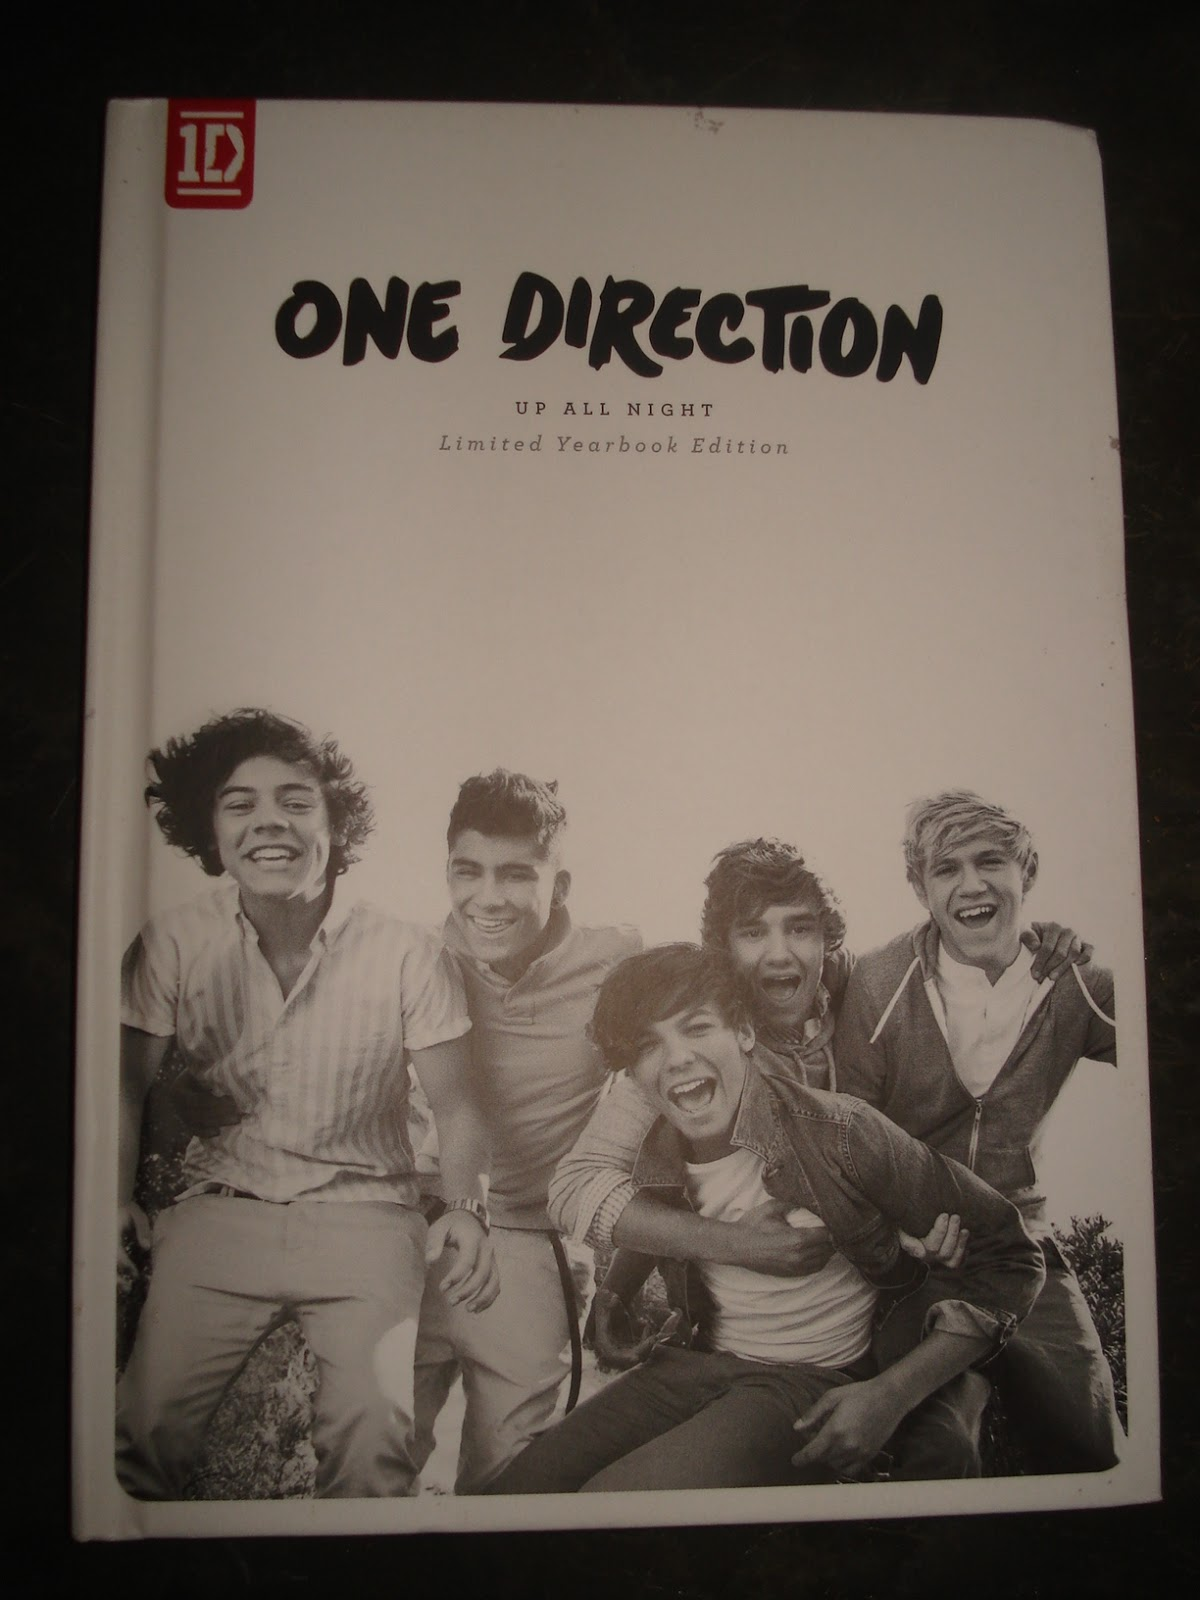 CD: One Direction - Up All Night (Limited Yearbook Edition ...